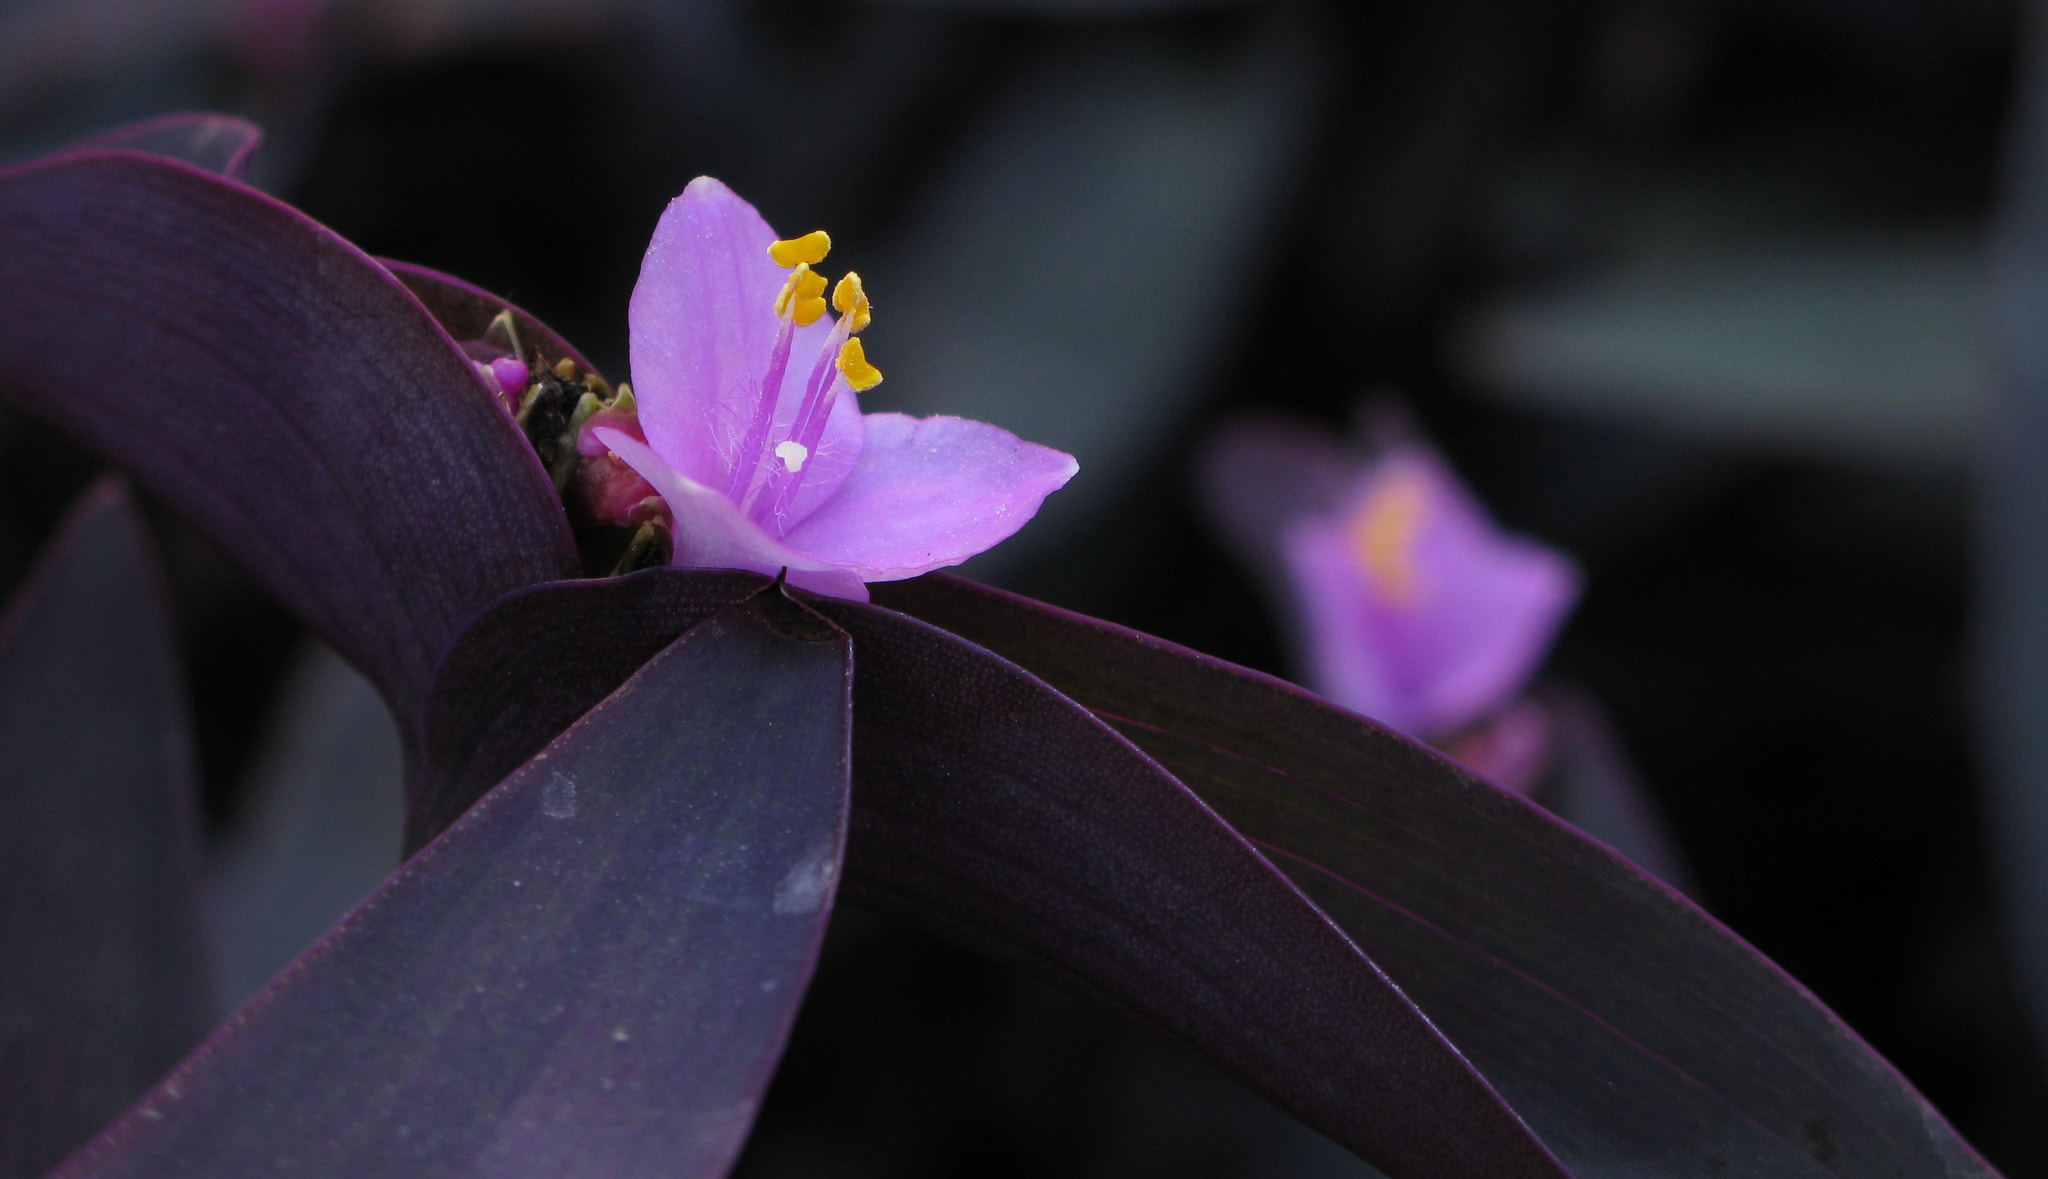 Photograph The Tiniest Purple Flower  by Brad Denny on 500px